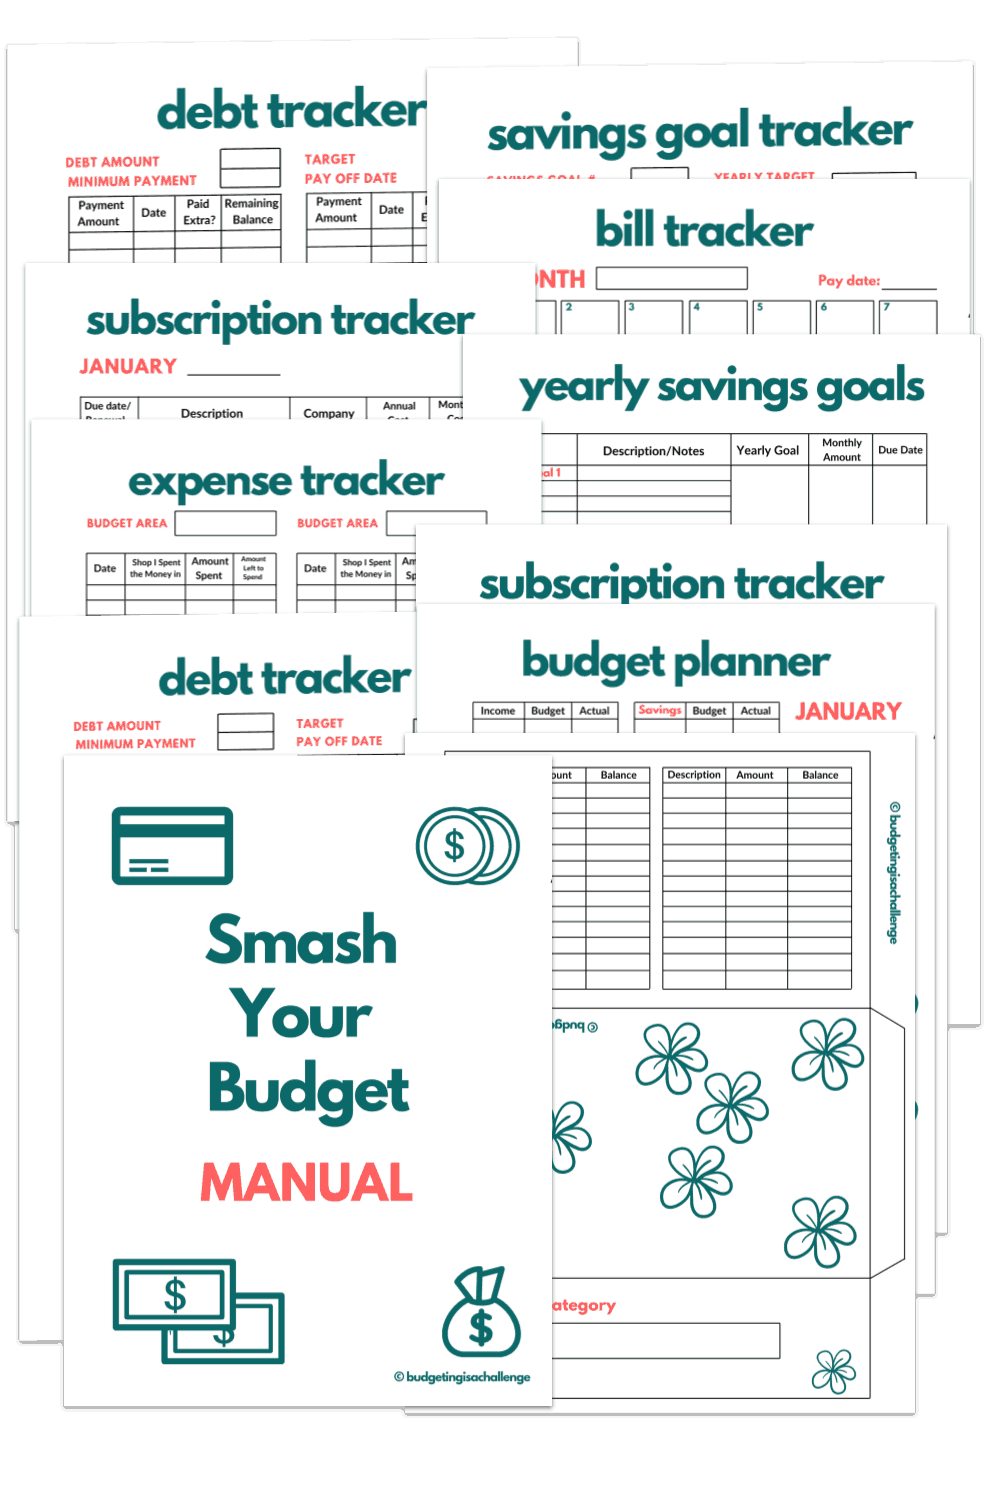 Do you need a simple budget planner? Save more money, get out of debt quicker and feel in control of where your money goes!